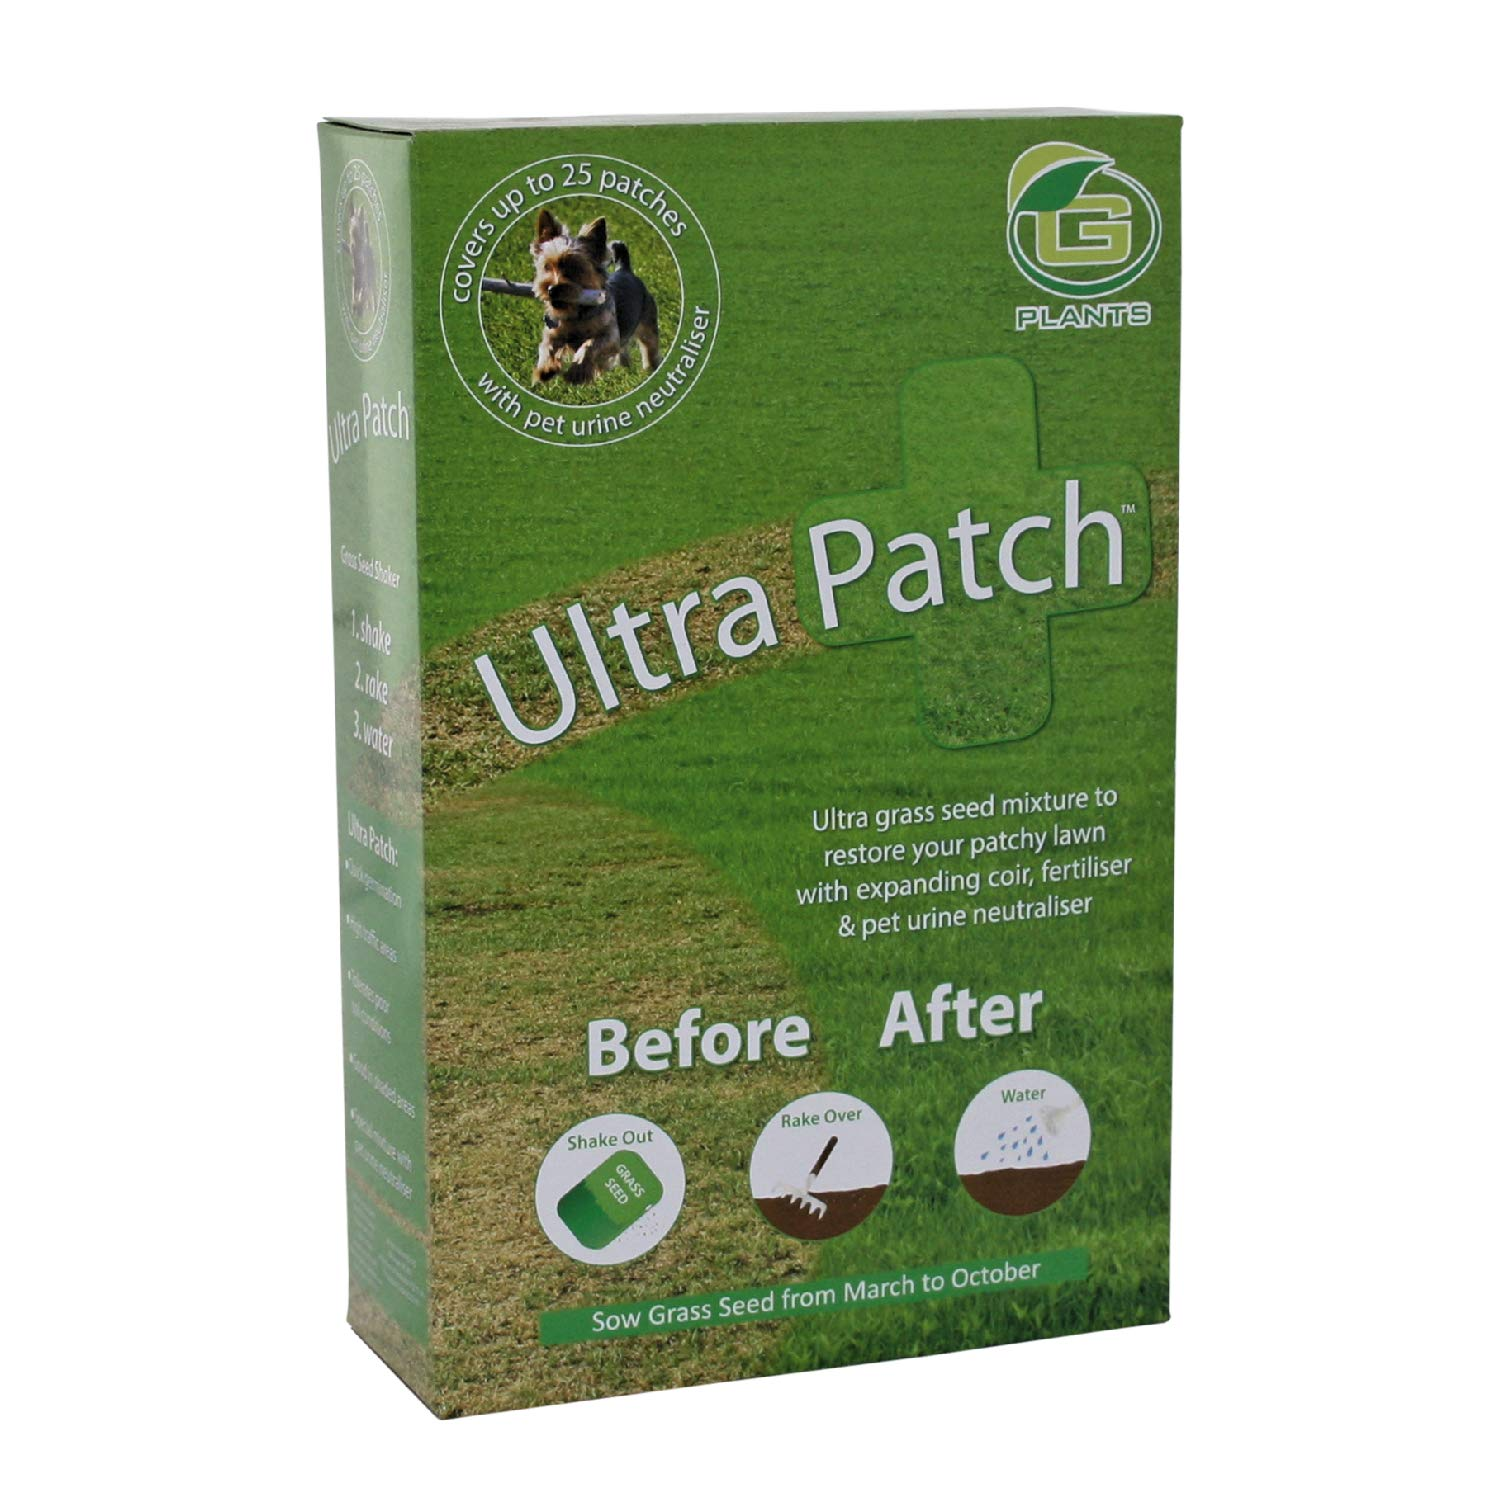 G plants 200g grass seed ultra patch: amazon. Co. Uk: garden & outdoors.